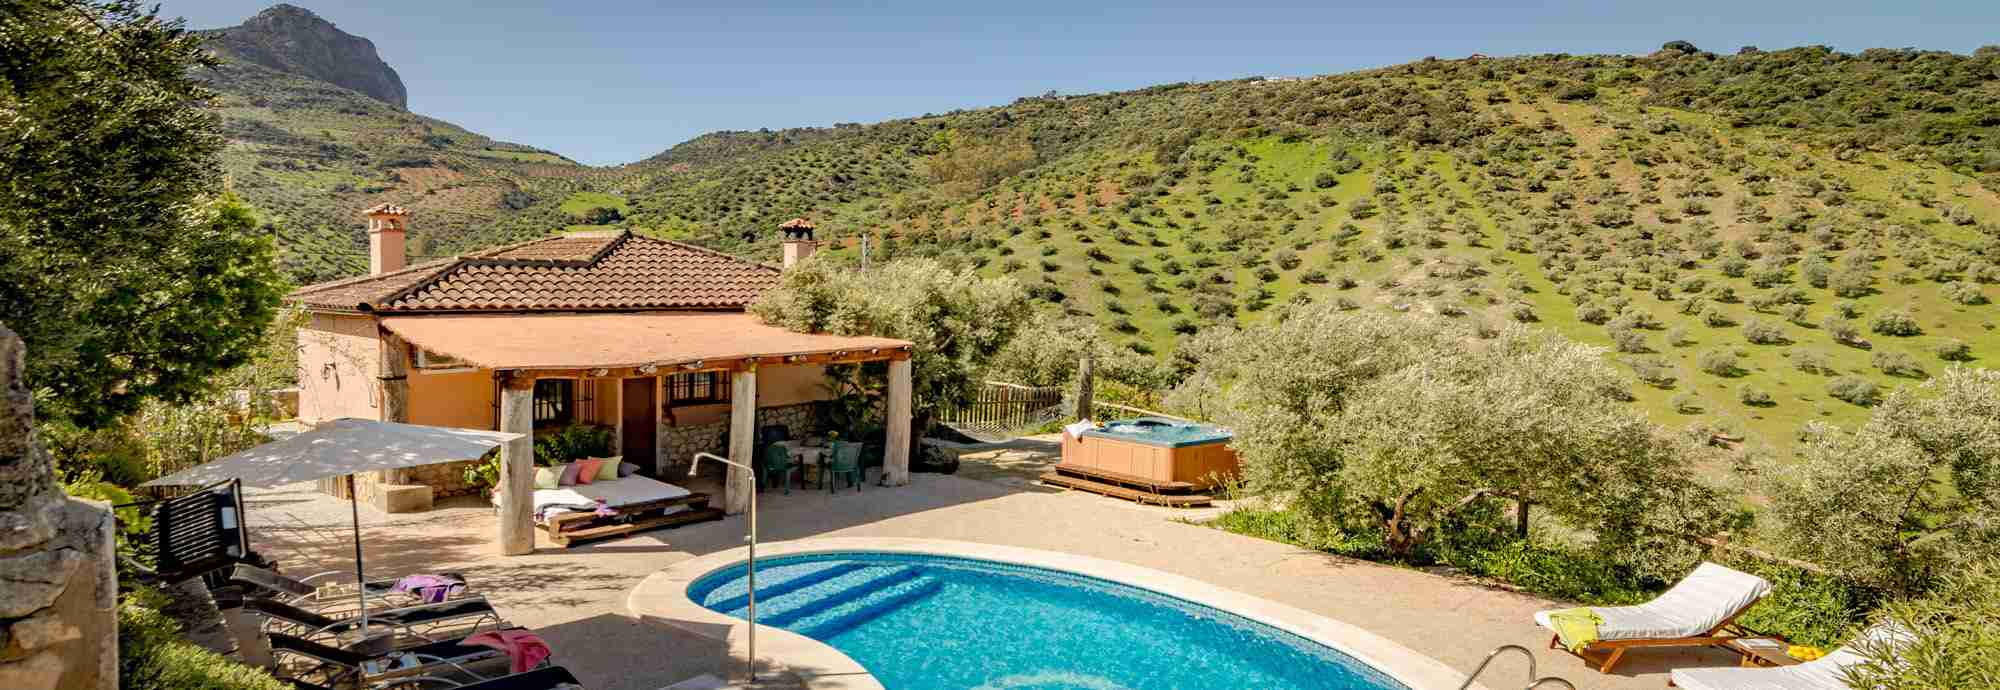 Wonderfully private rural villa with views, pool and WiFi near Ronda